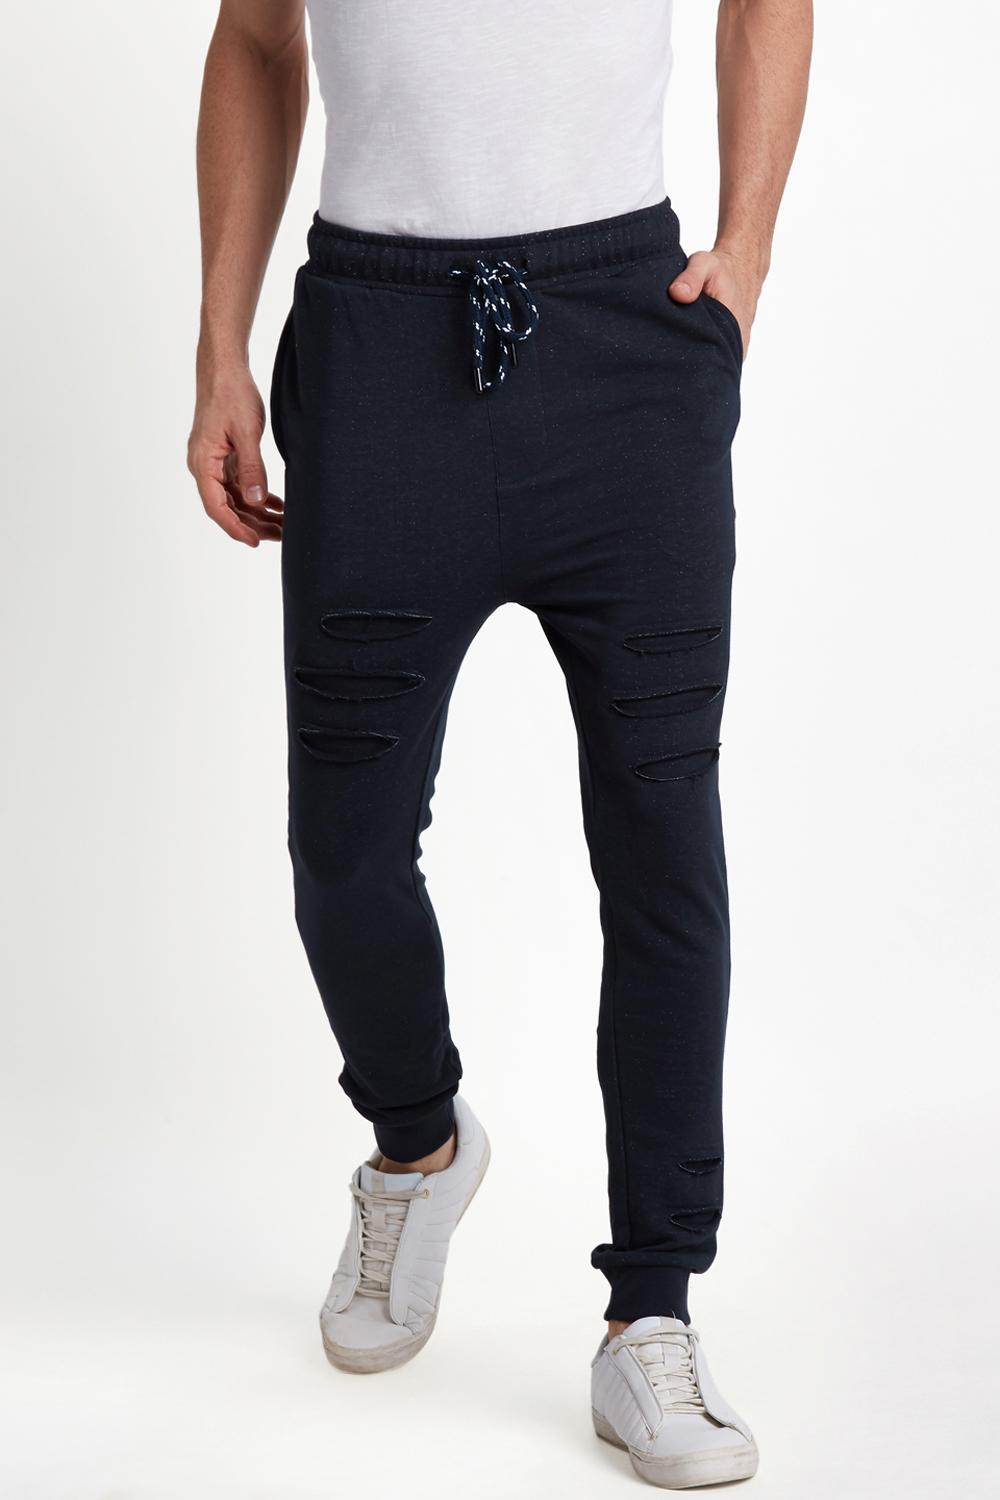 63235d20eea Buy Mens Trousers and Chinos Online in India